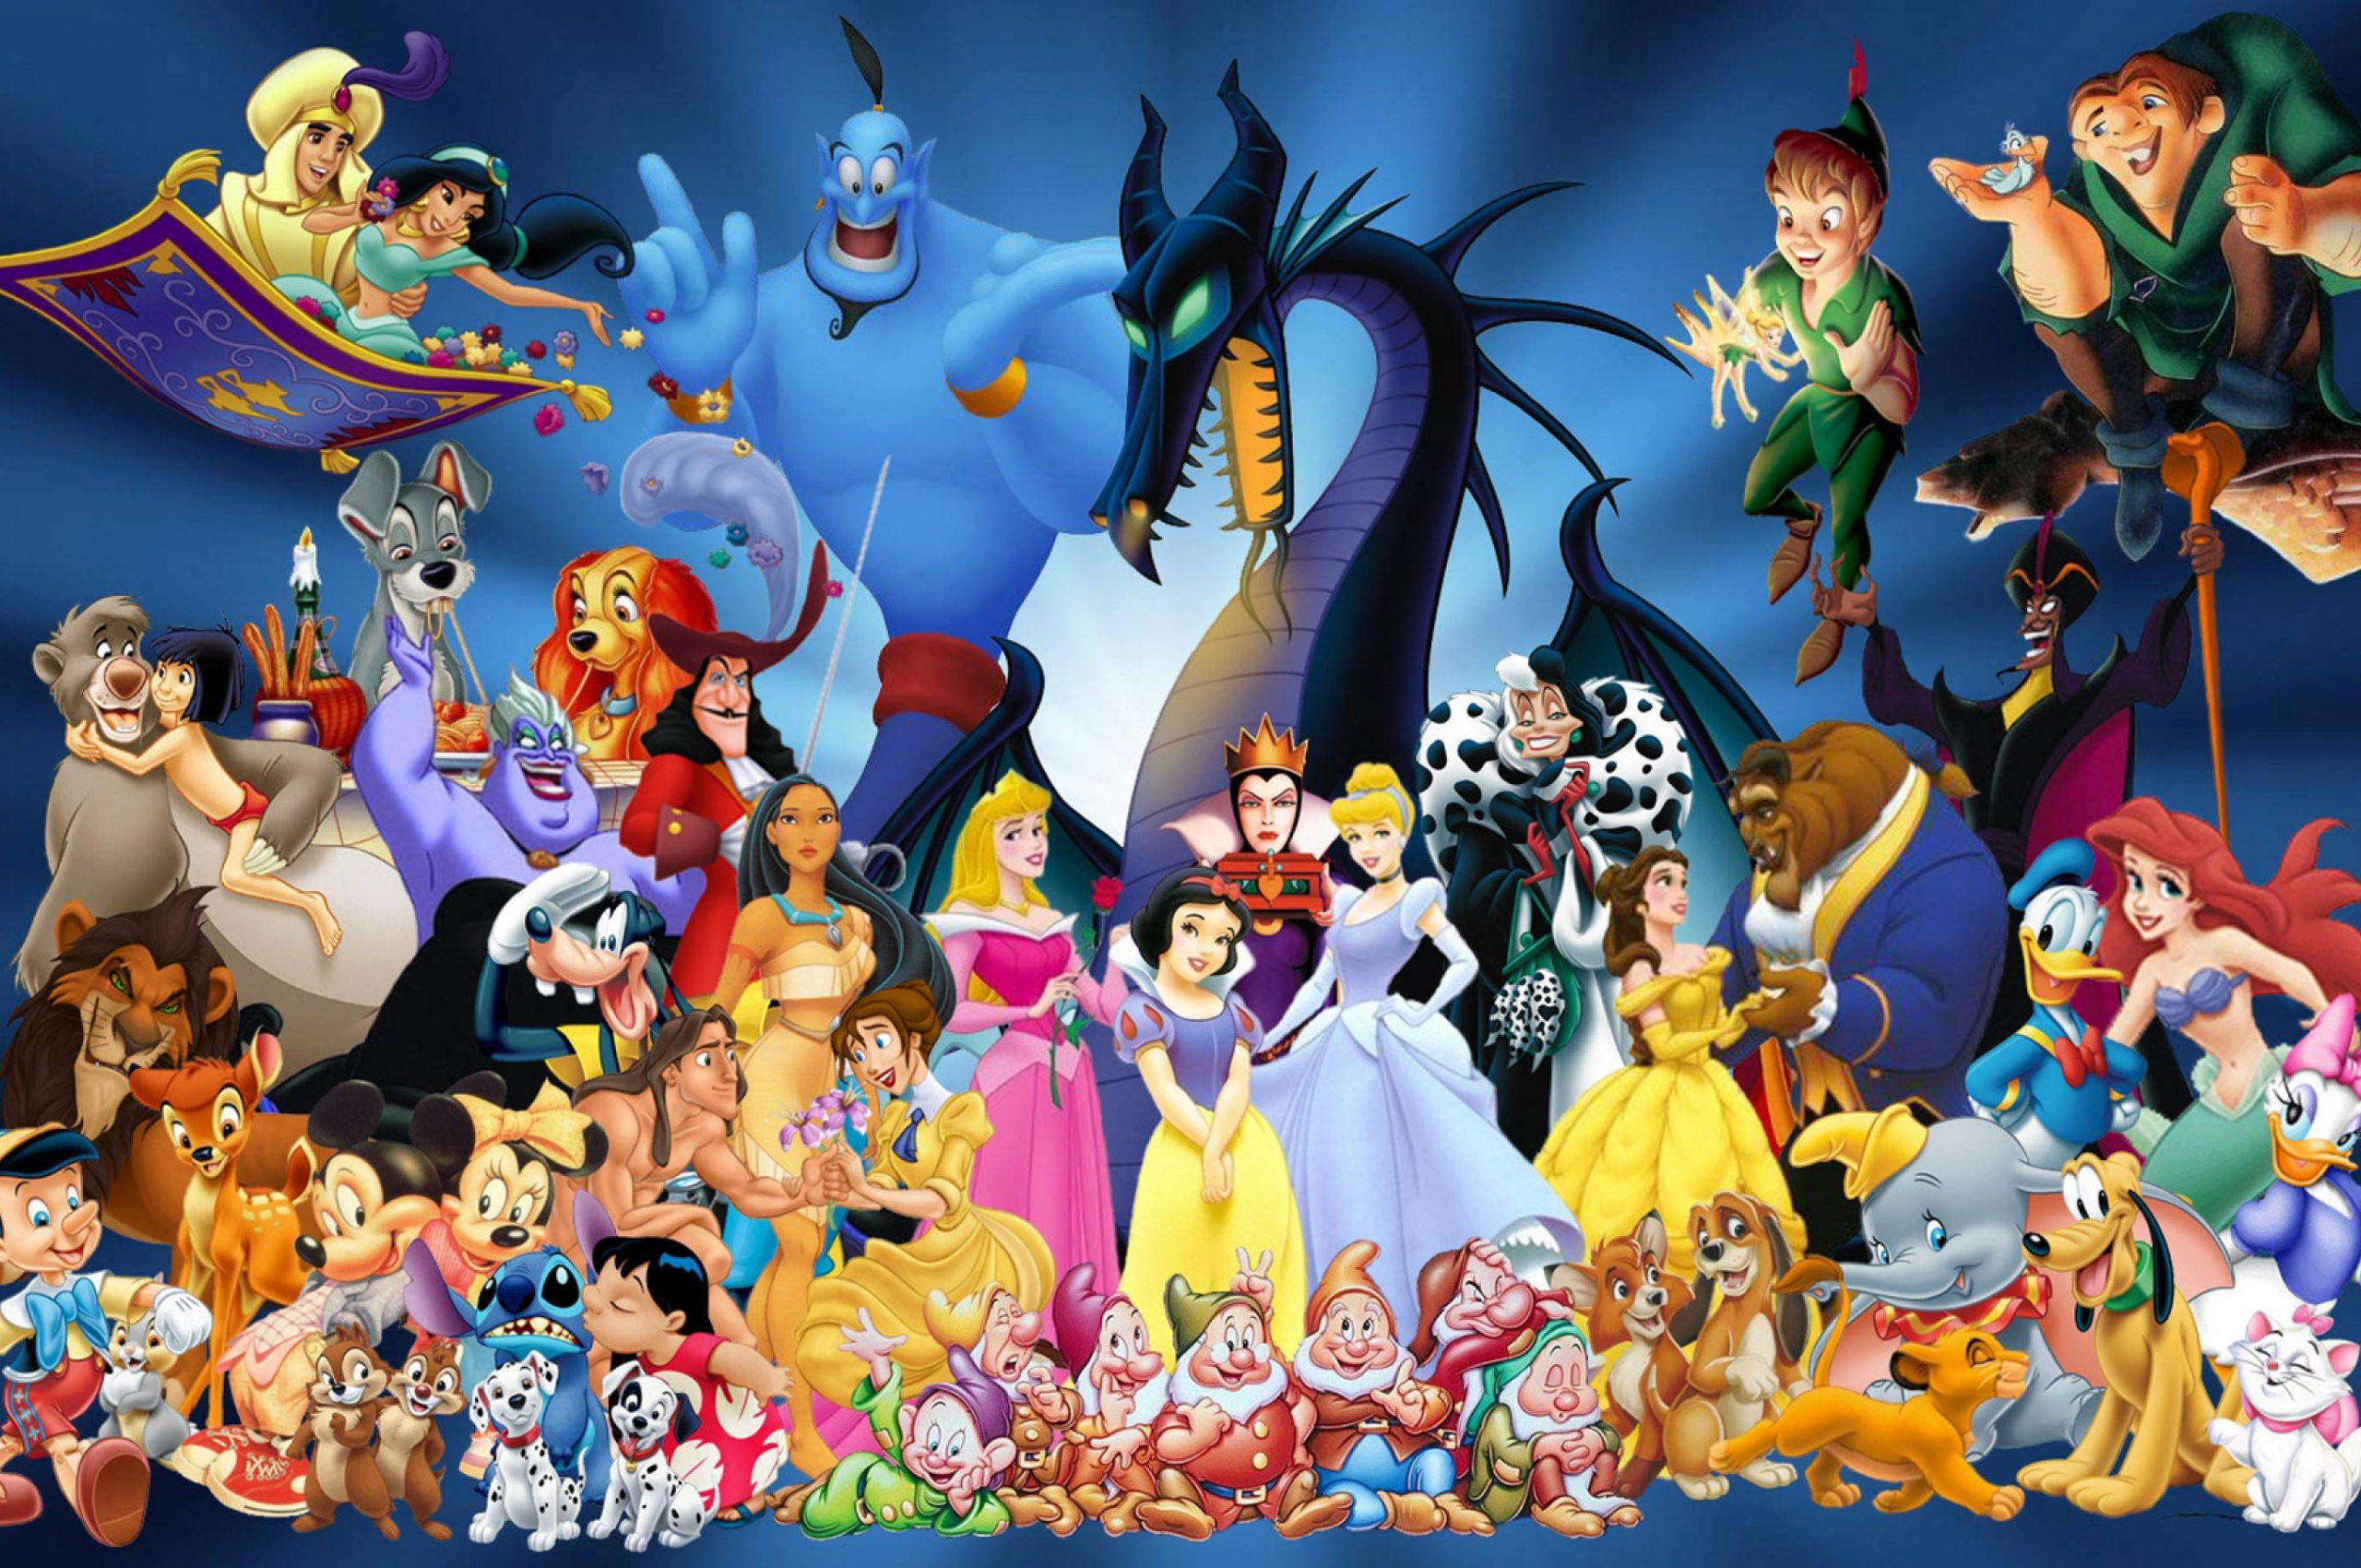 Free Download Disney Hd Wallpapers 2880x1800 For Your